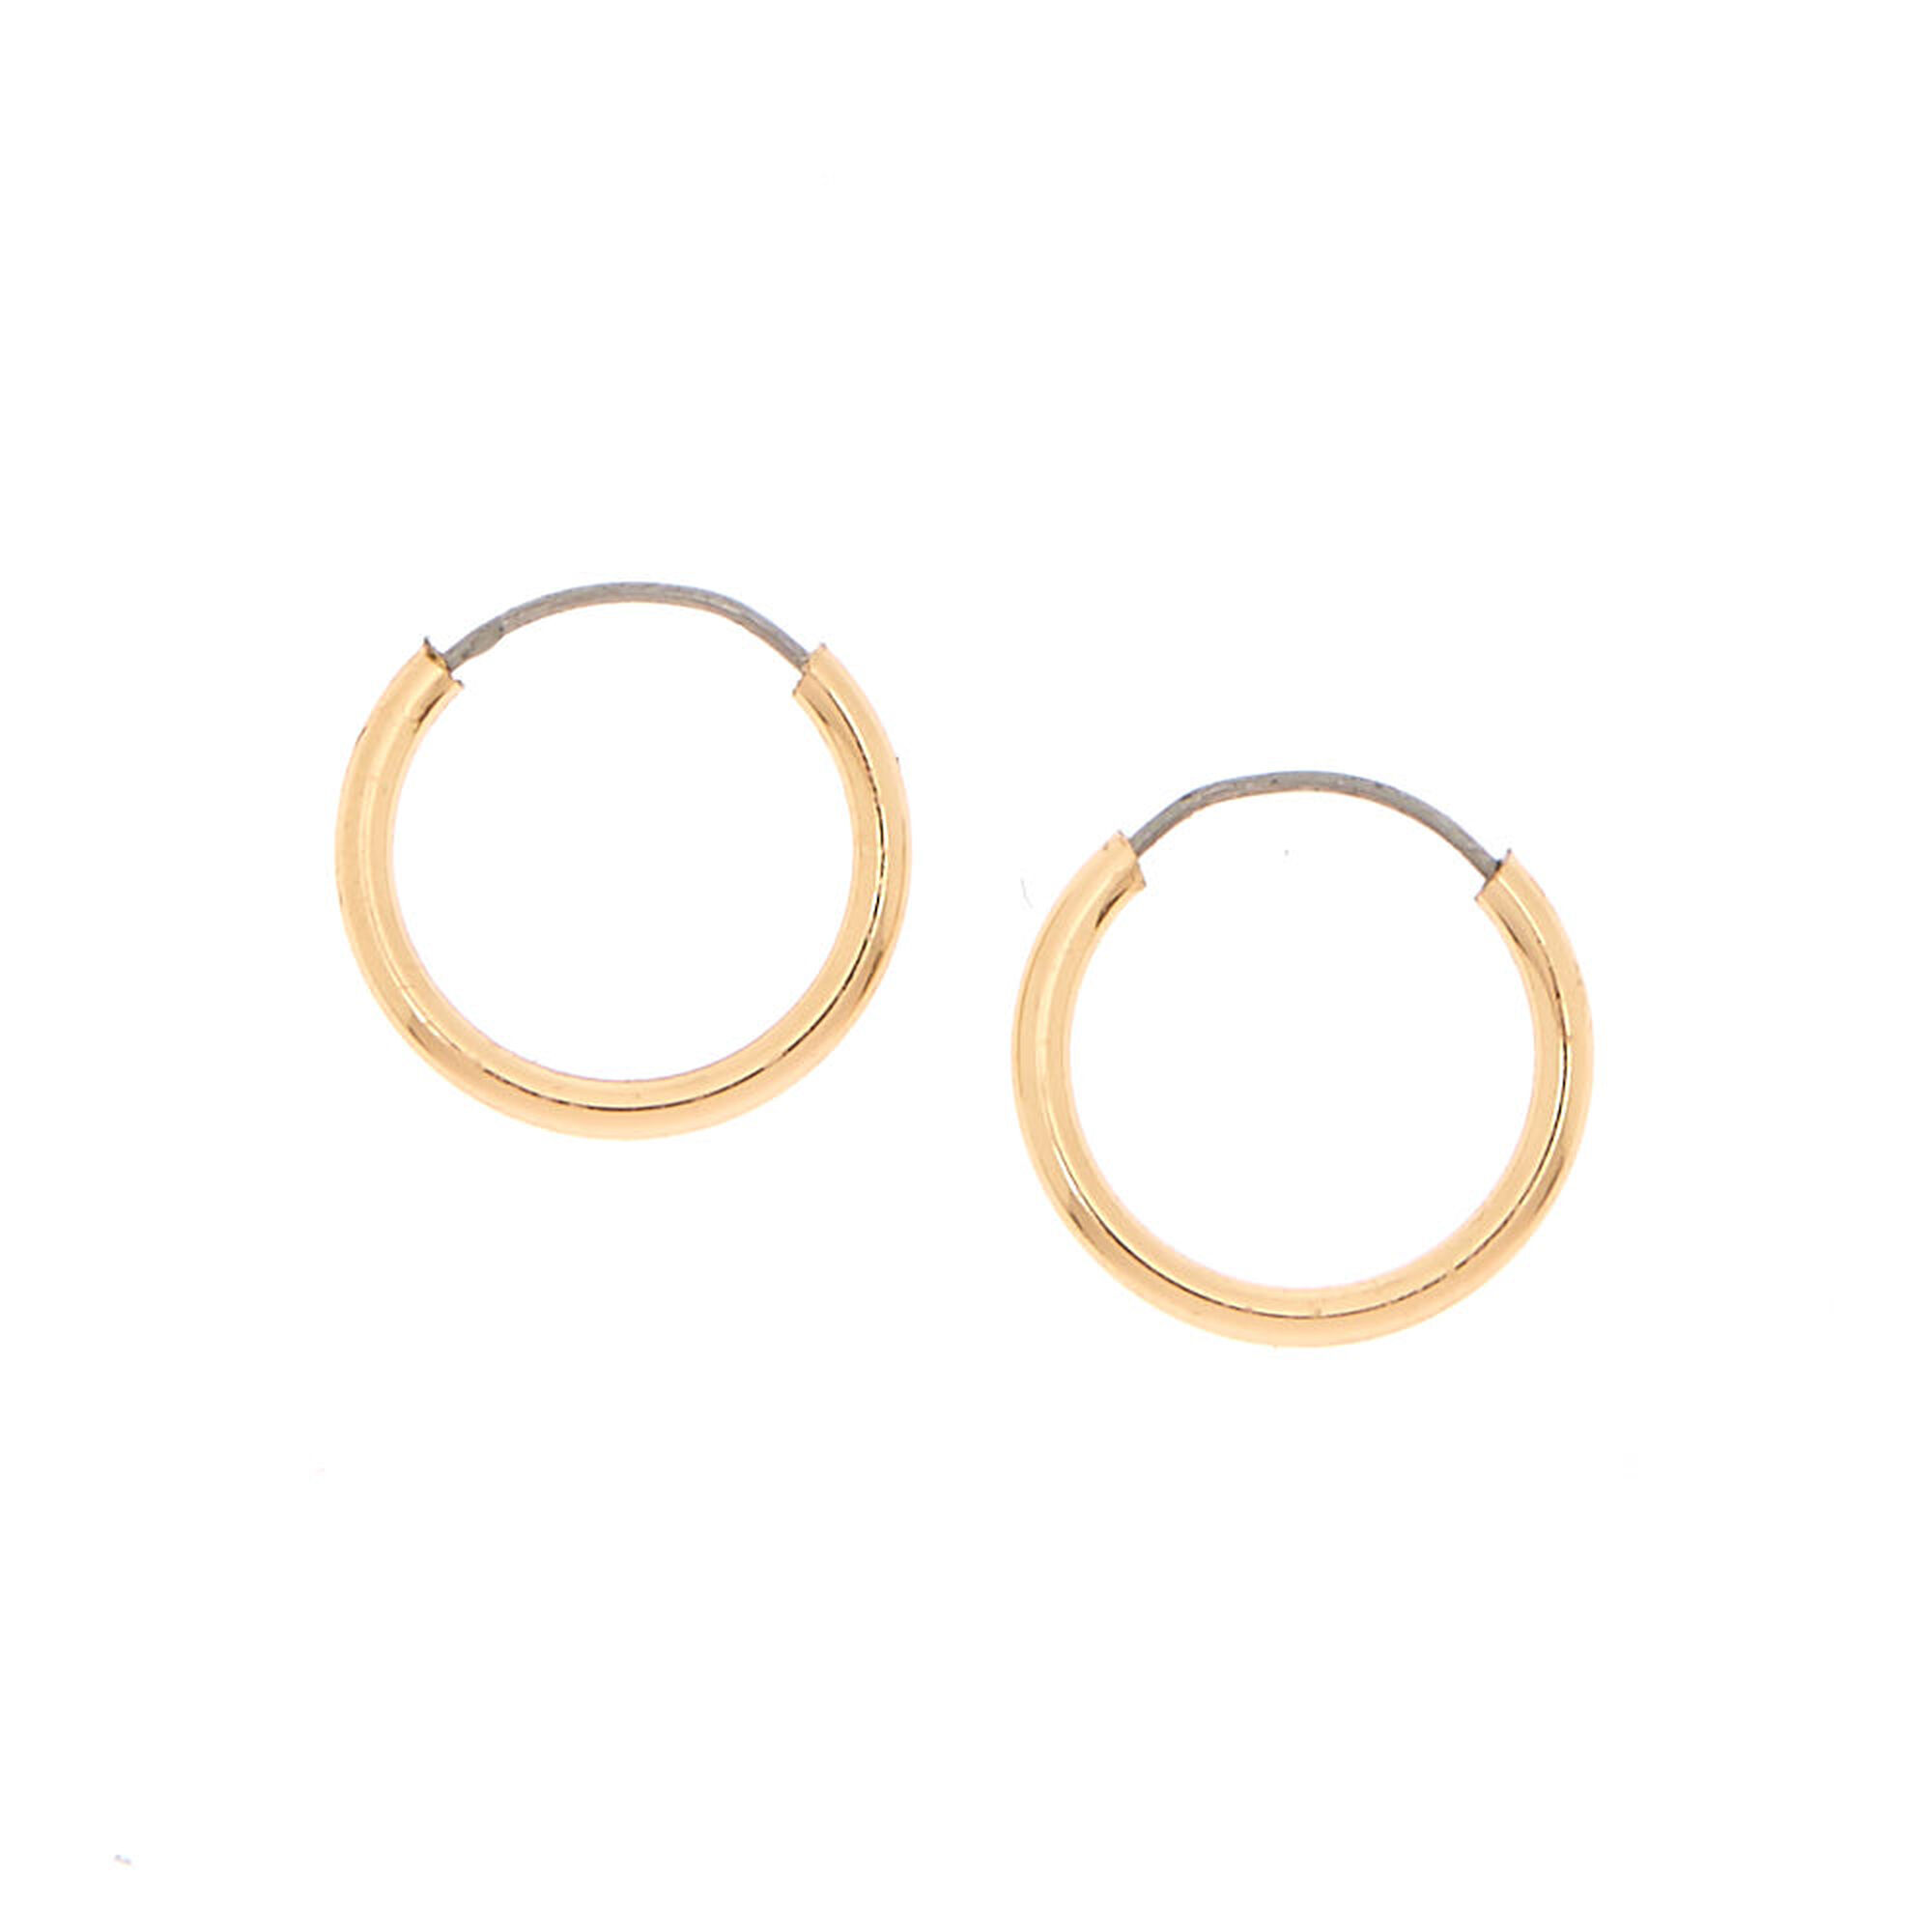 gold earrings blake rose fetneh jewellery hoop collections jewelry rosehoop products